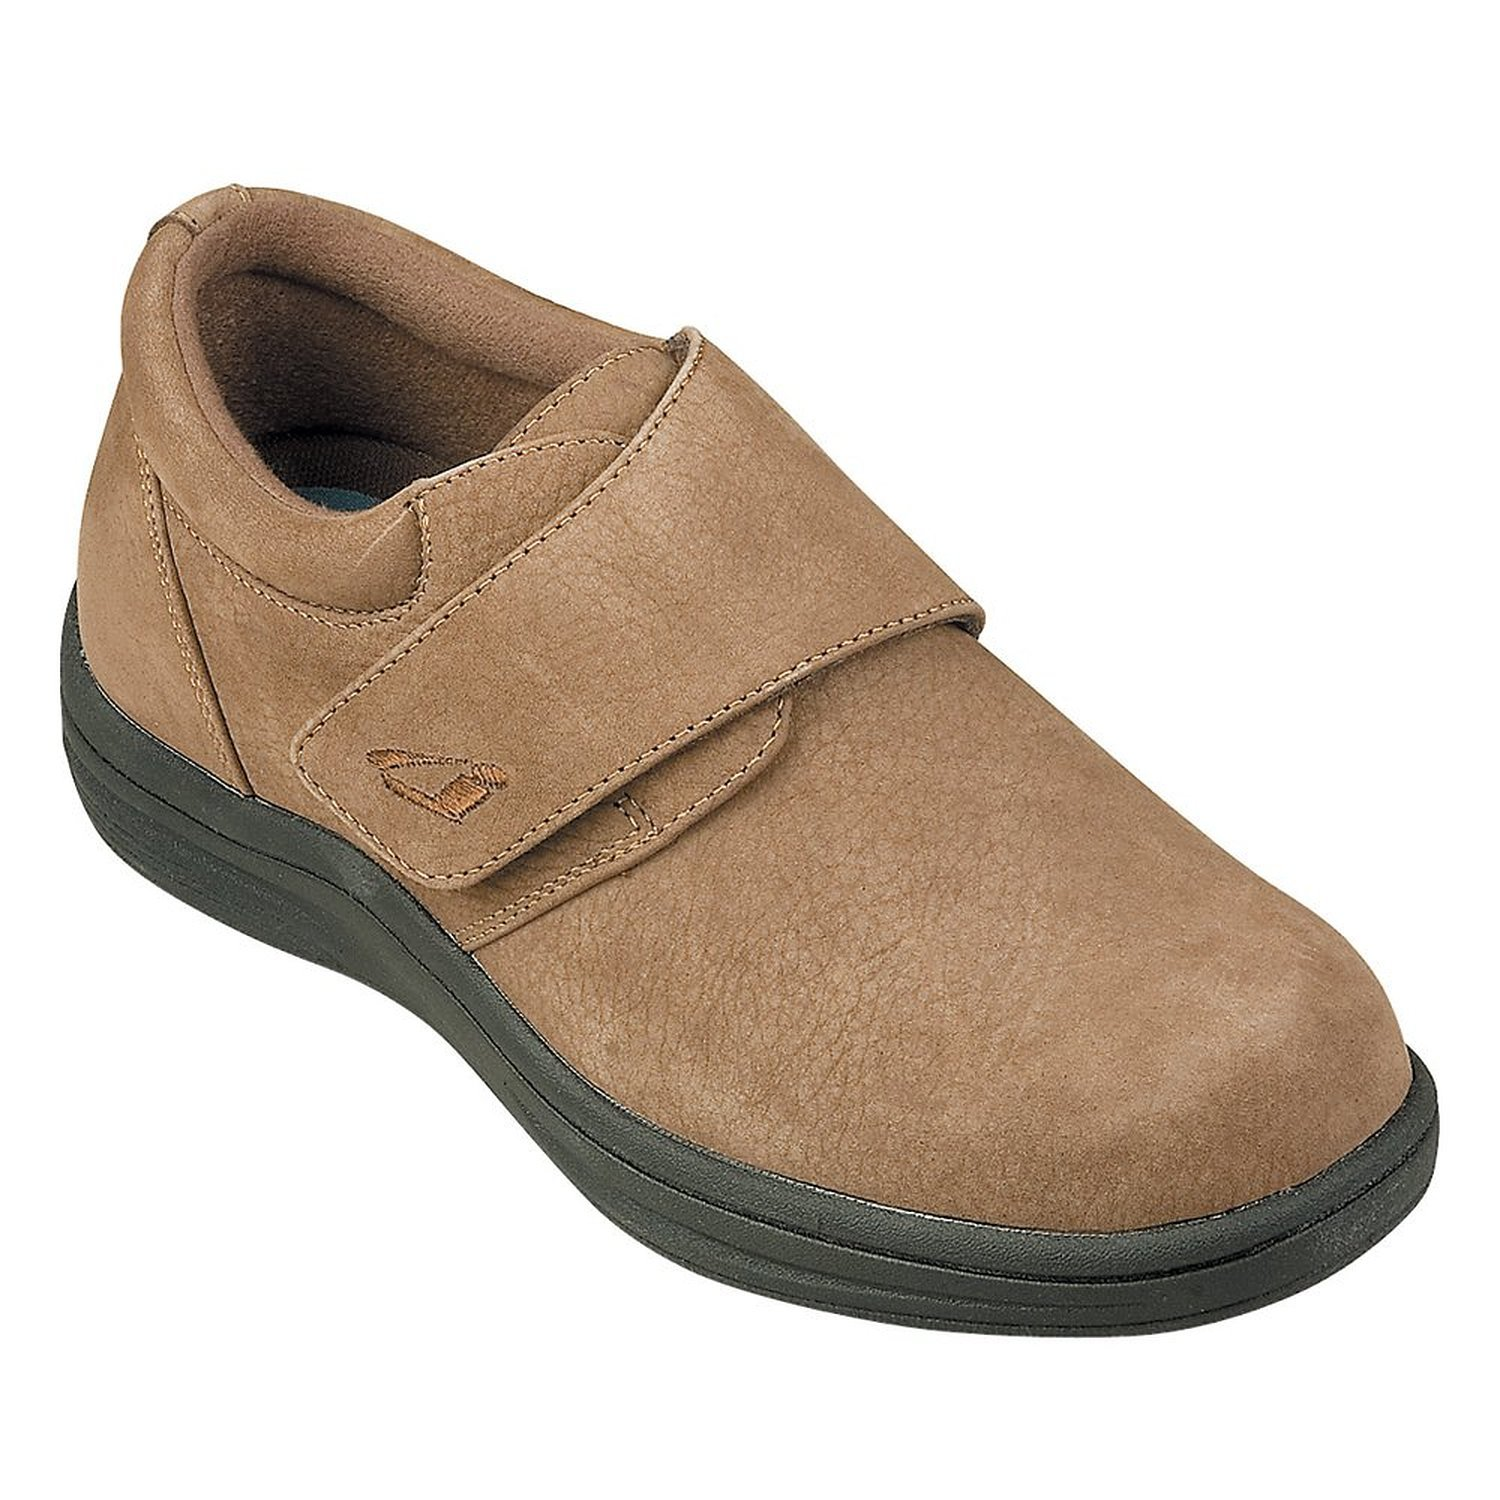 Details about InStride VENICE Womens Brown Nubuck Leather Strap Diabetic  Casual Comfort Shoes